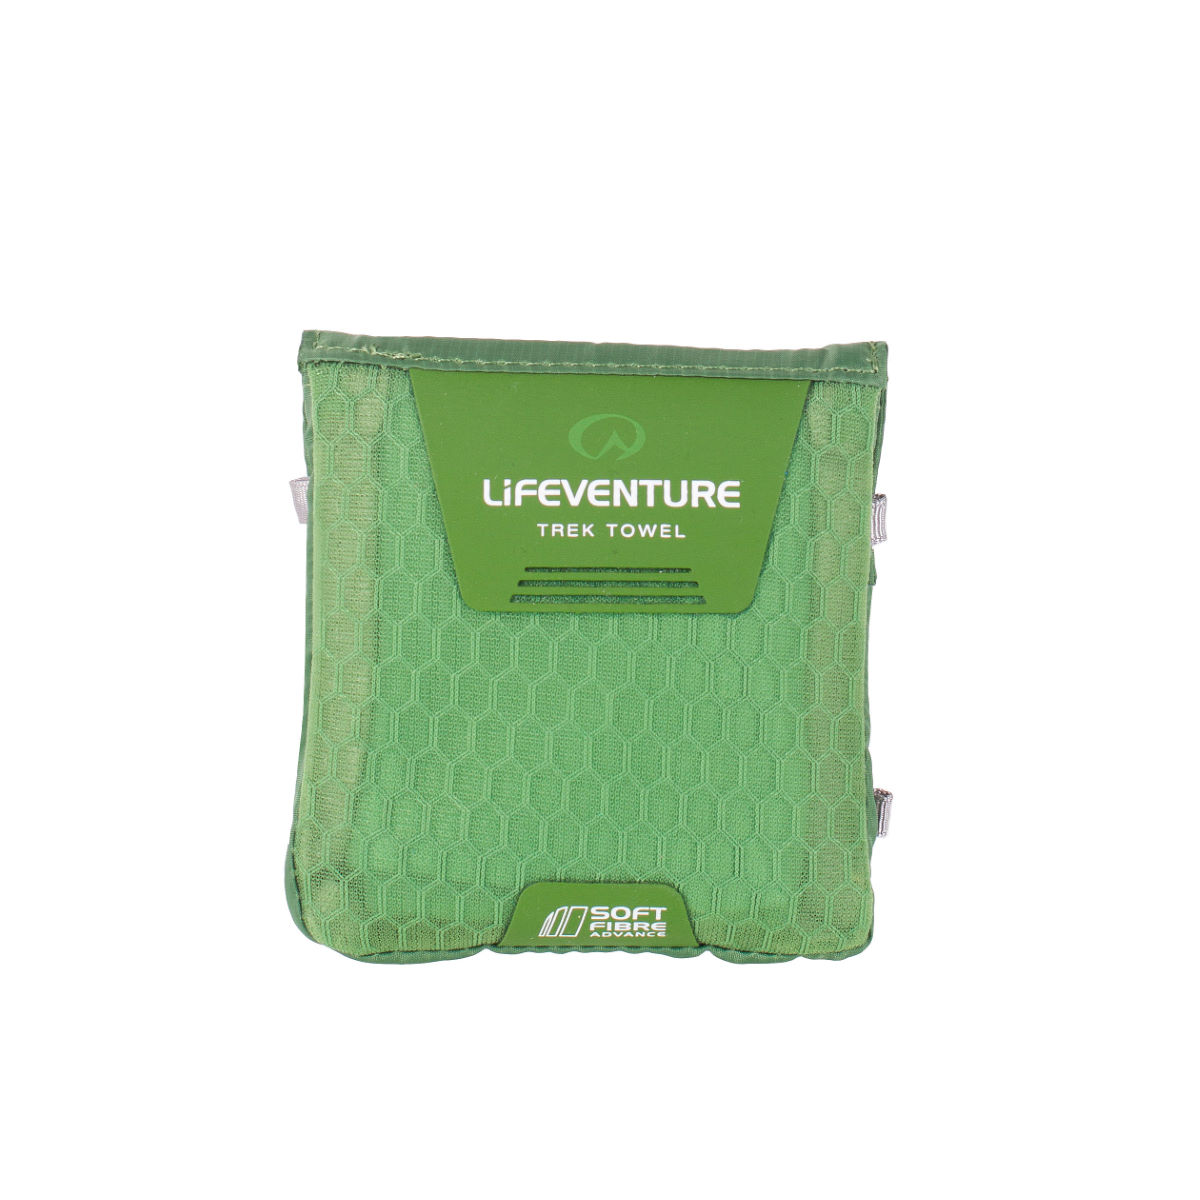 Serviette Lifeventure Soft Fibre Advance - Giant Vert Tentes